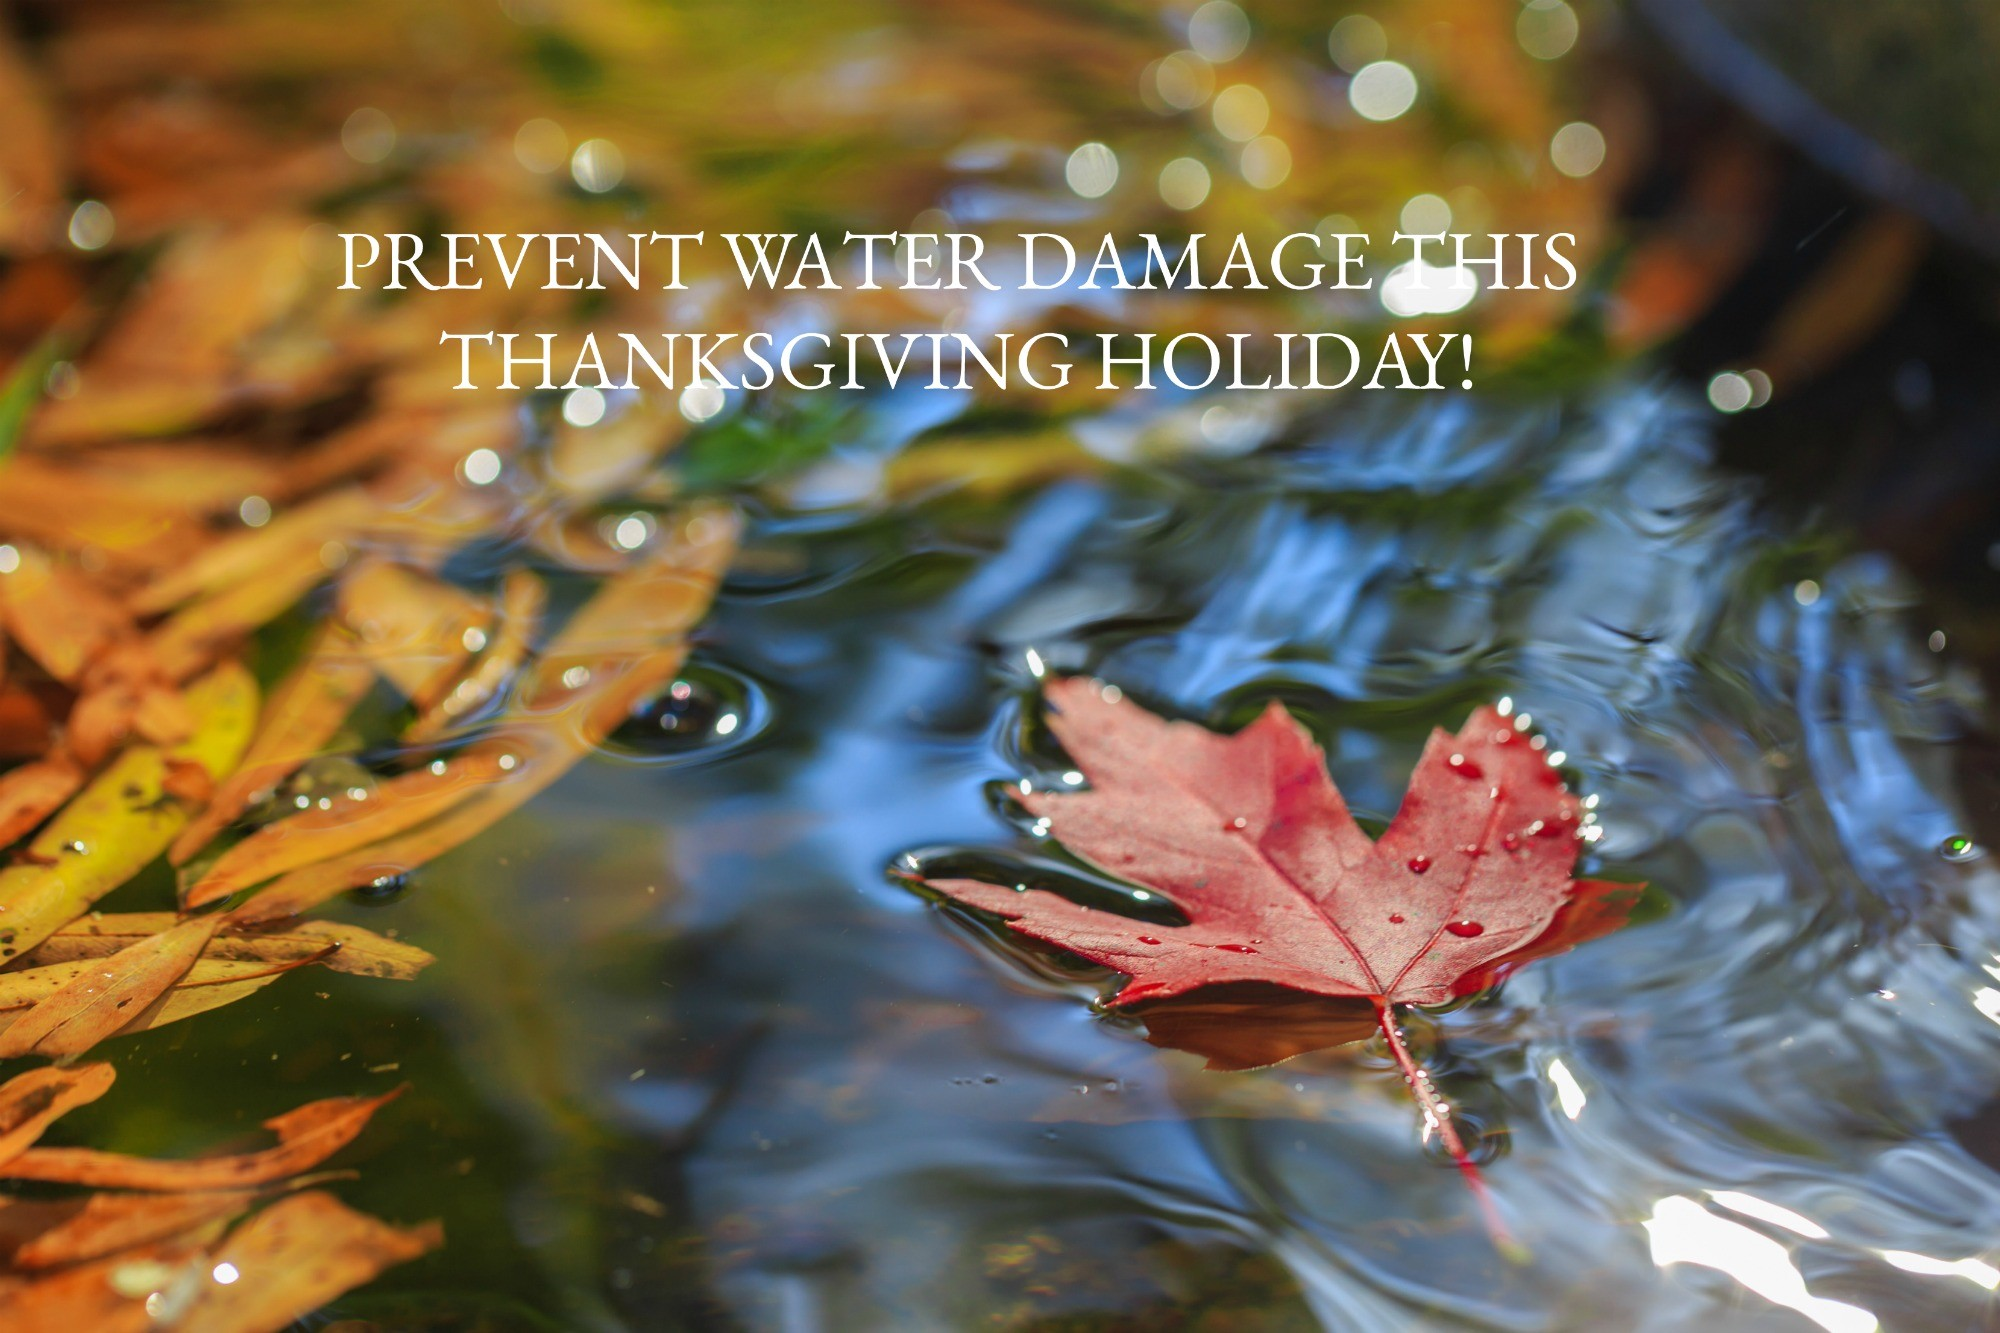 PREVENT WATER DAMAGE THIS THANKSGIVING HOLIDAY